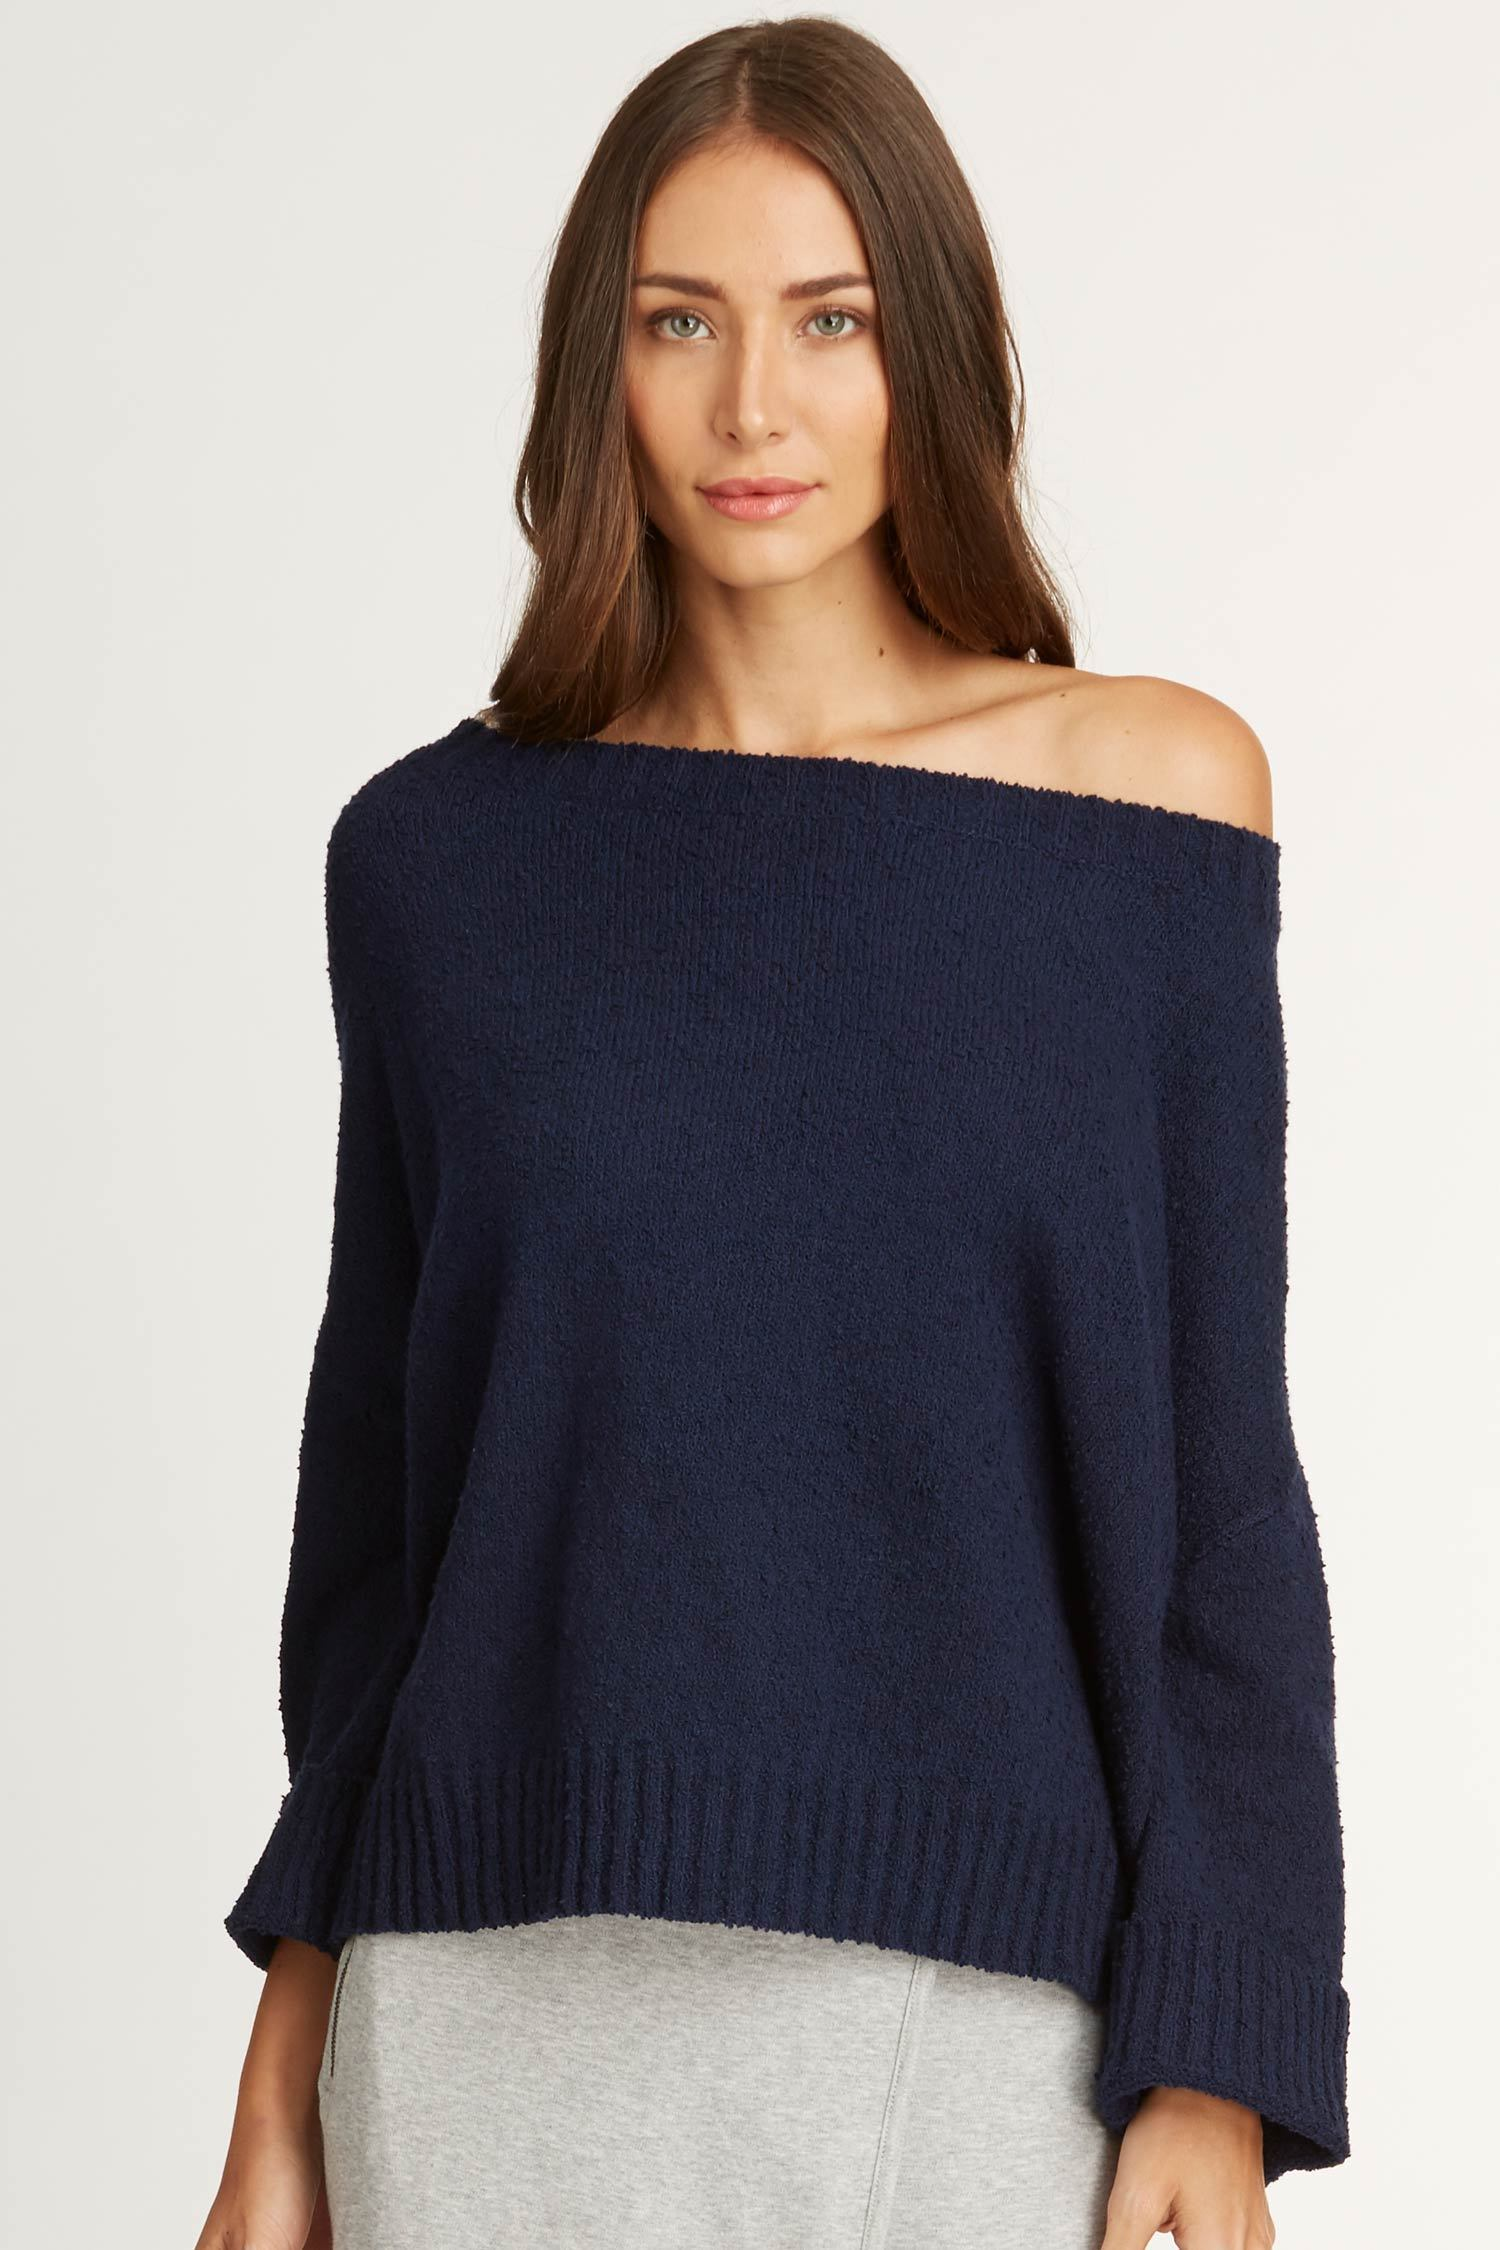 8712734b369 ... Womens Organic Cotton Sweater